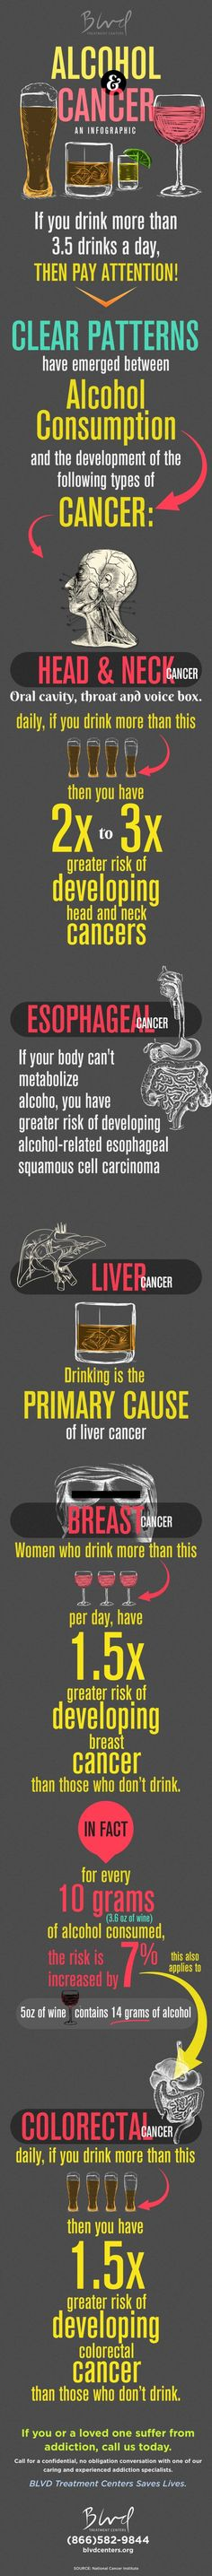 Alcohol and Cancer. Also note that heavy drinking can turn into alcohol abuse or alcoholism.